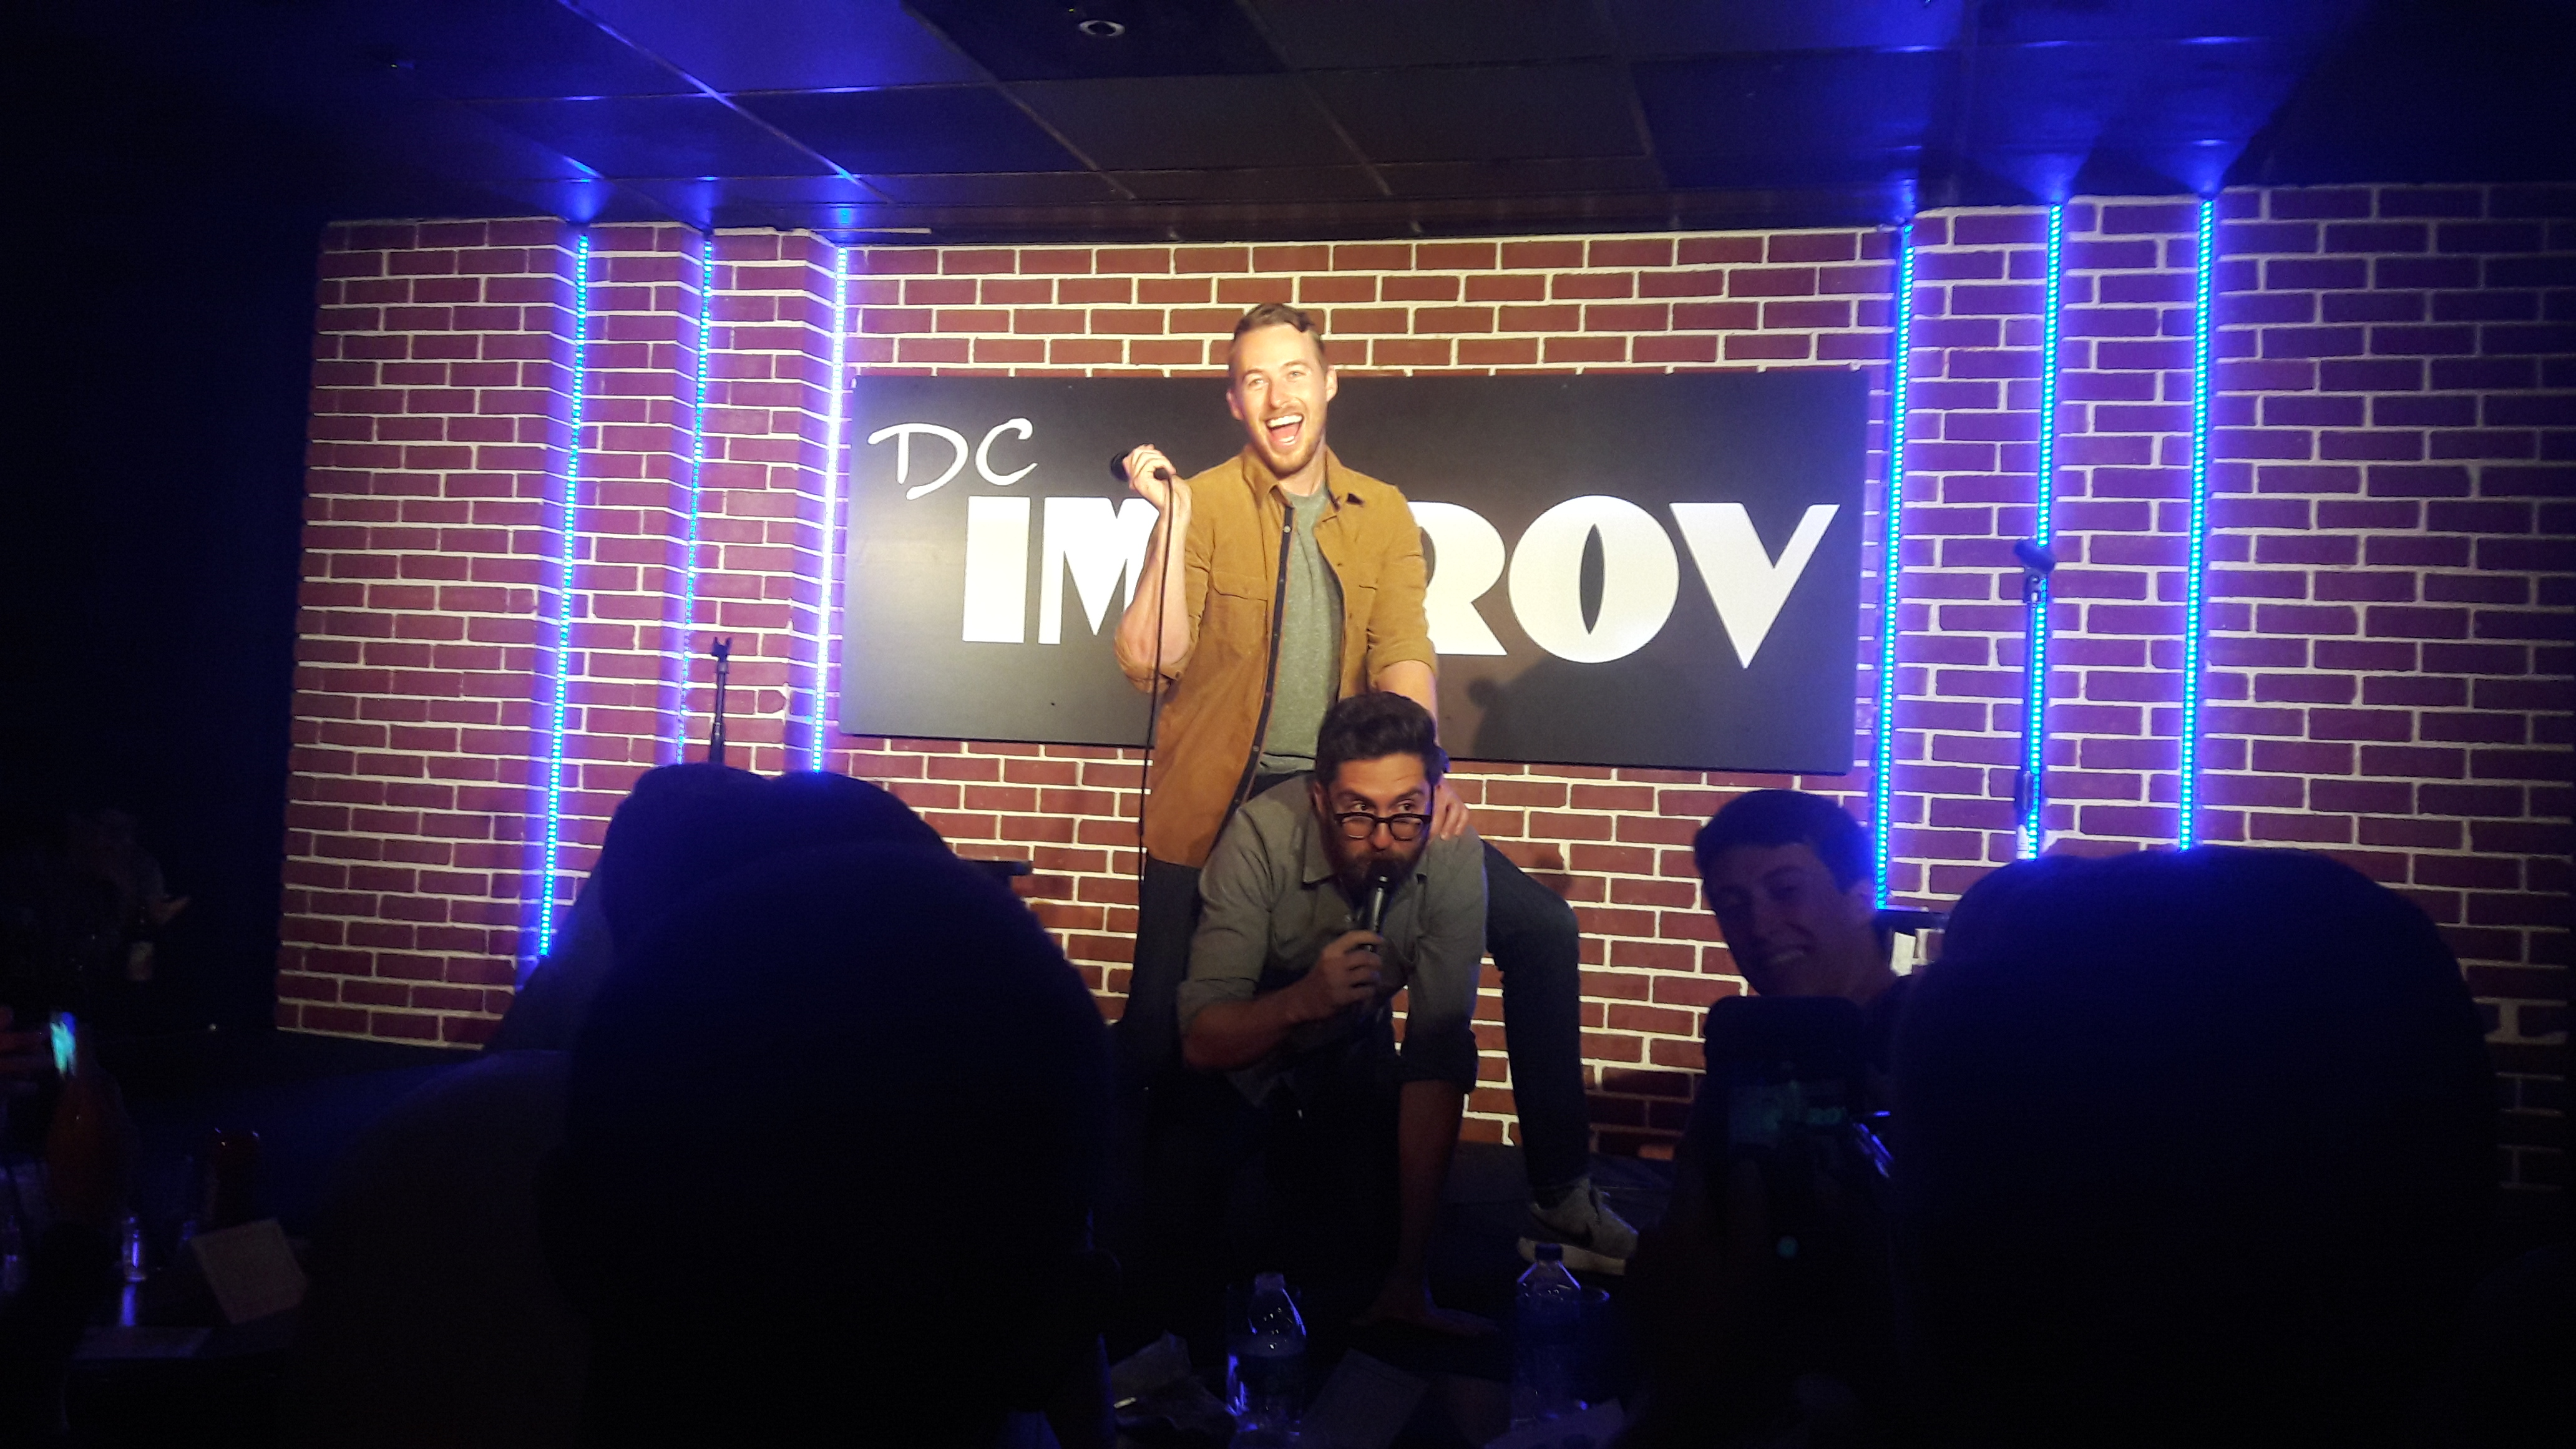 22if_i_were_you22_live_show_at_dc_improv_2017